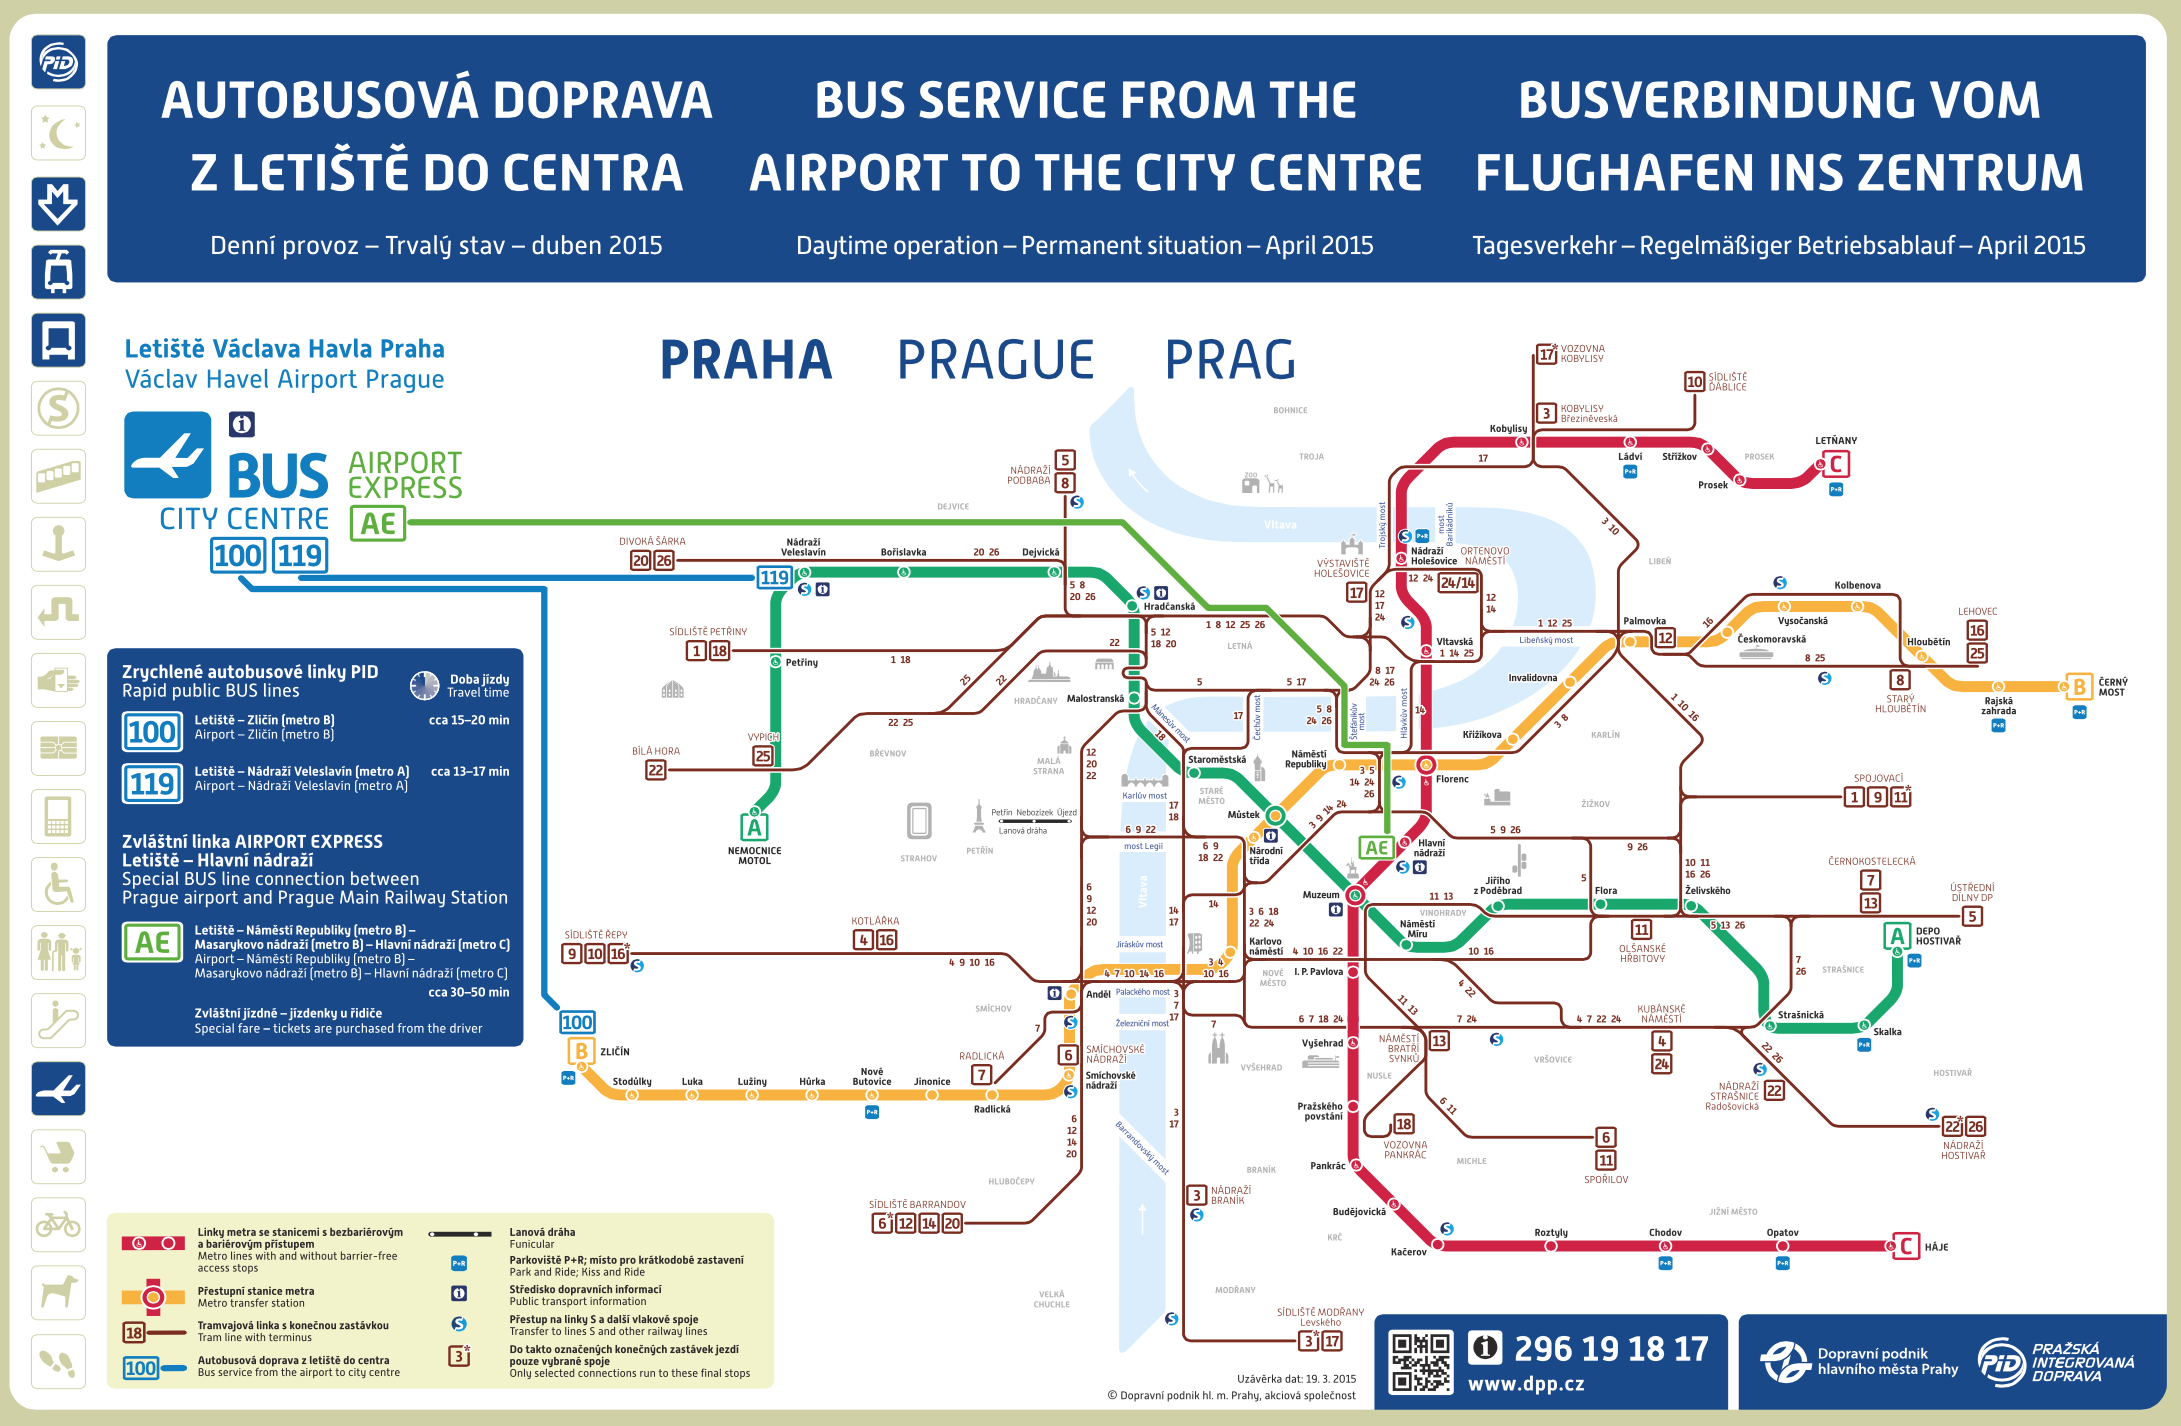 Map of bus service to the airport